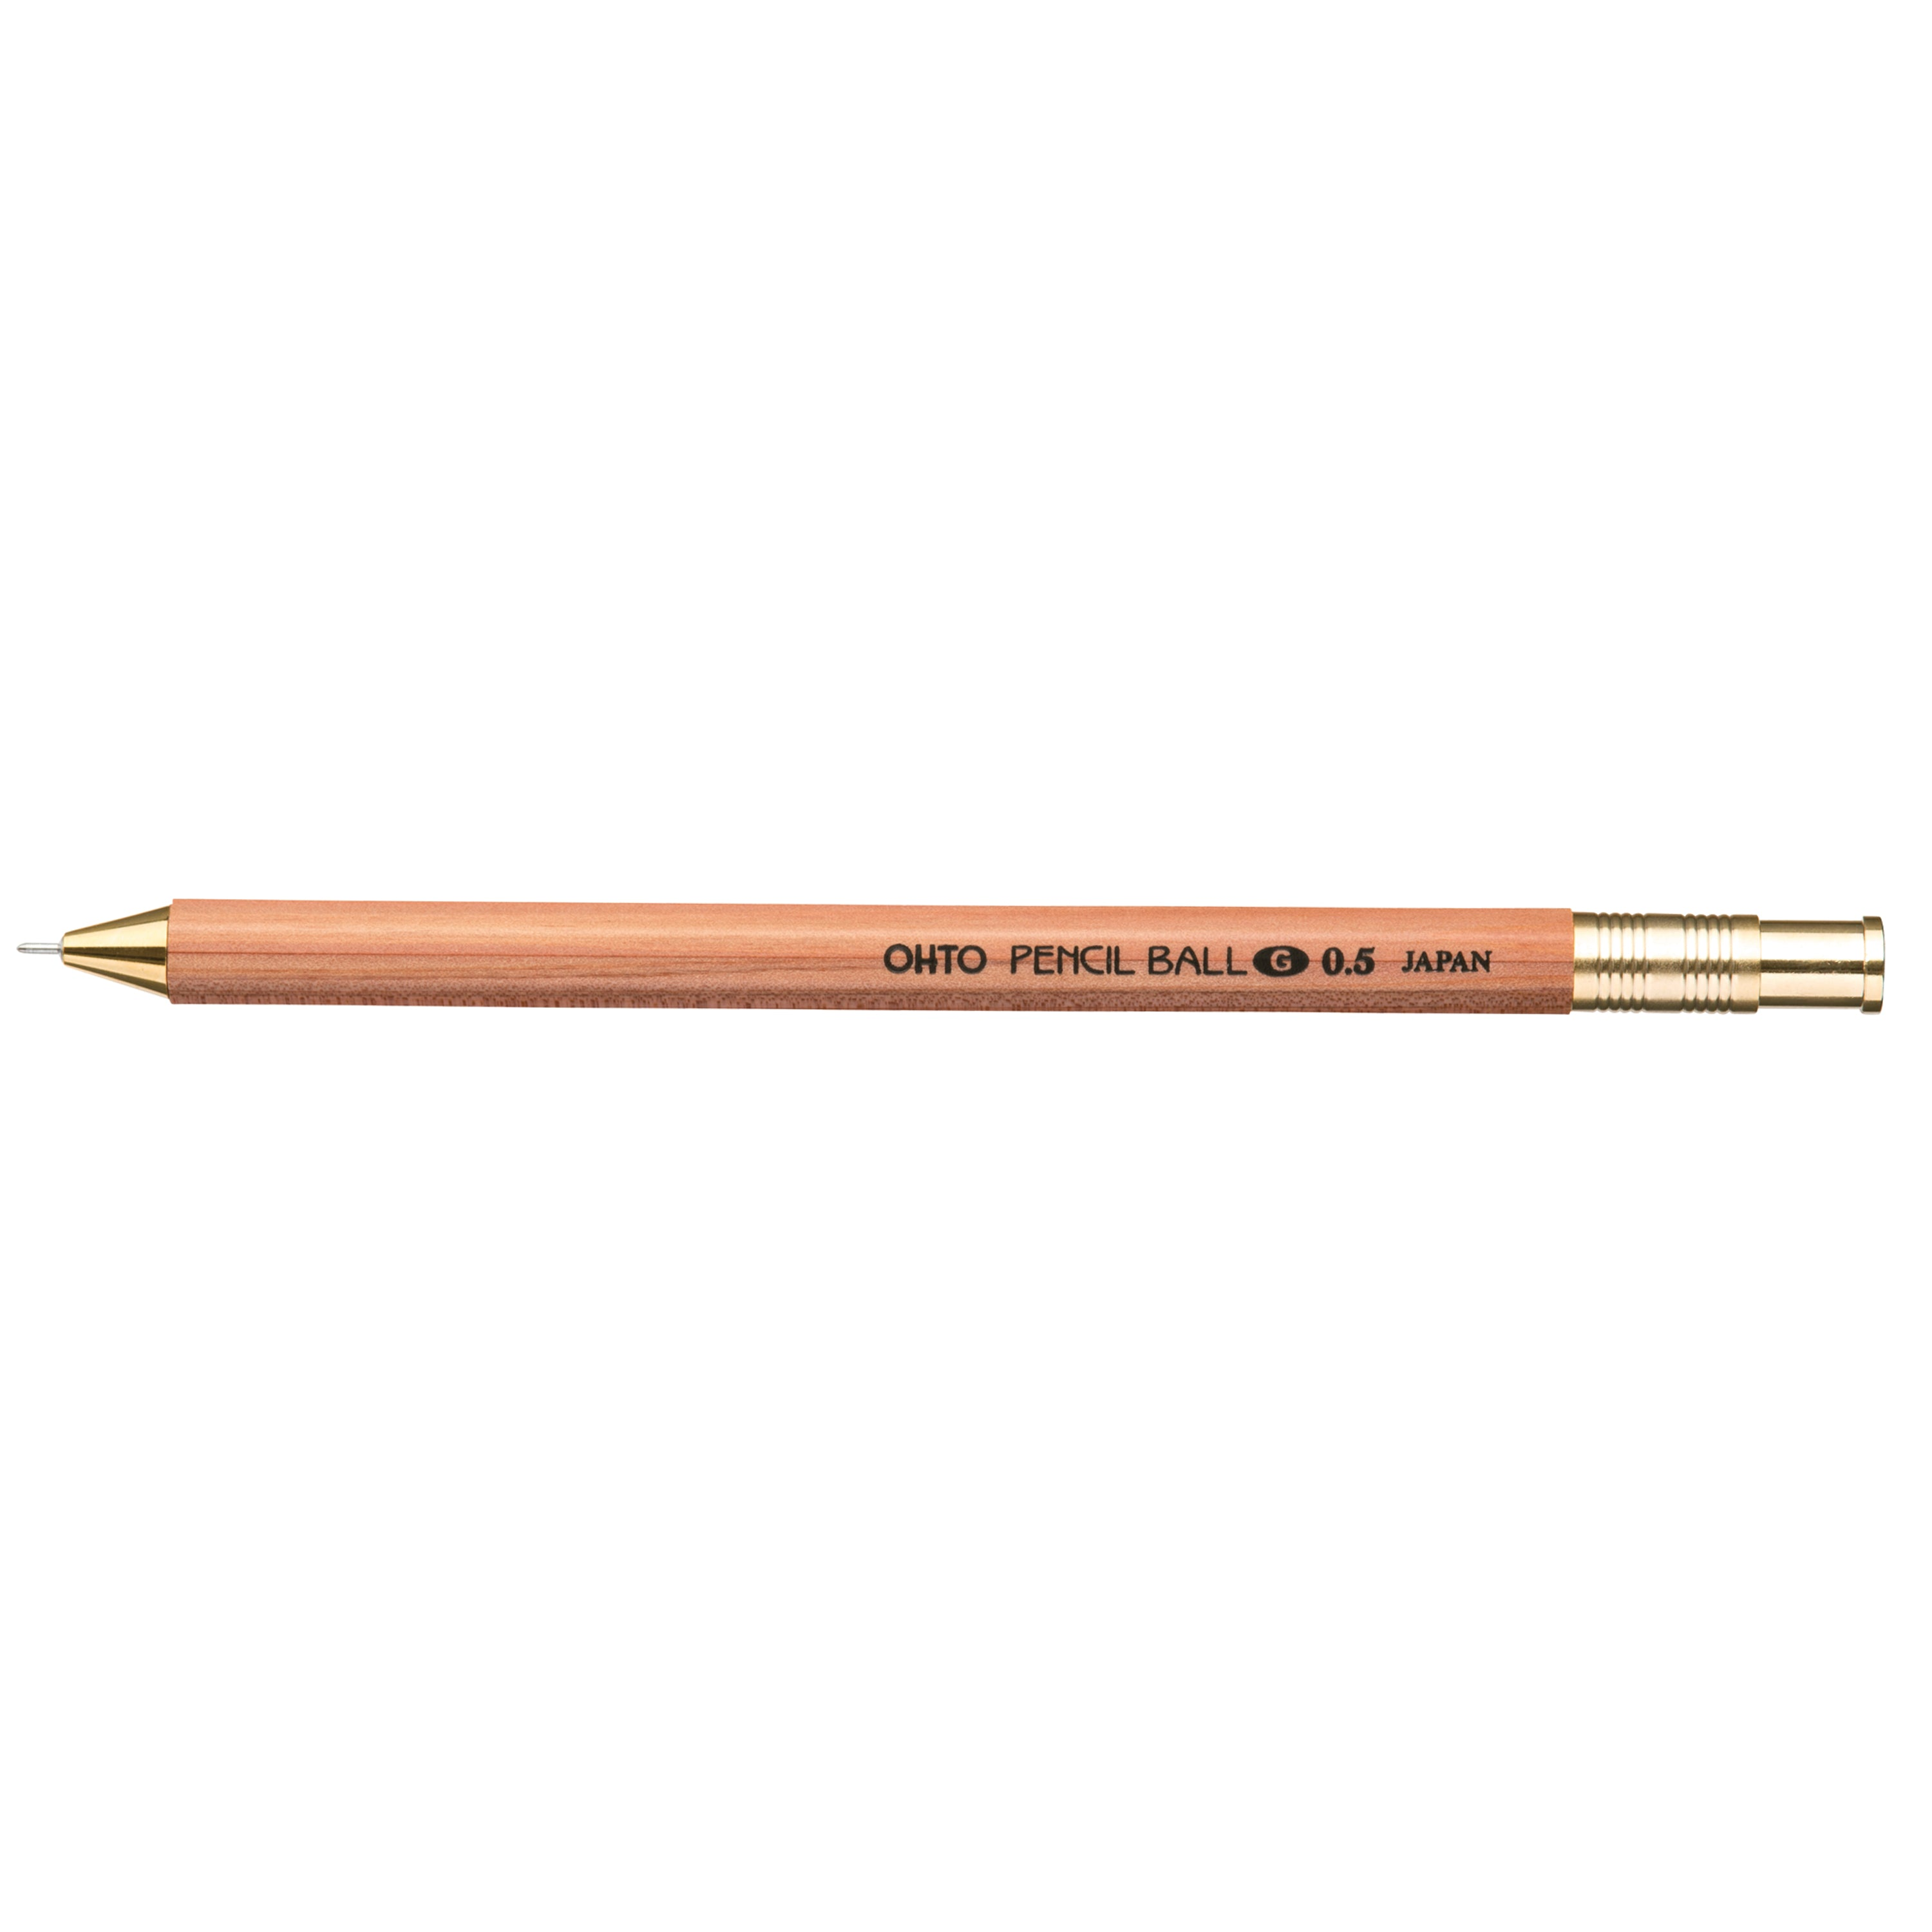 OHTO Pencil Ball G 0.5 Pen / Natural